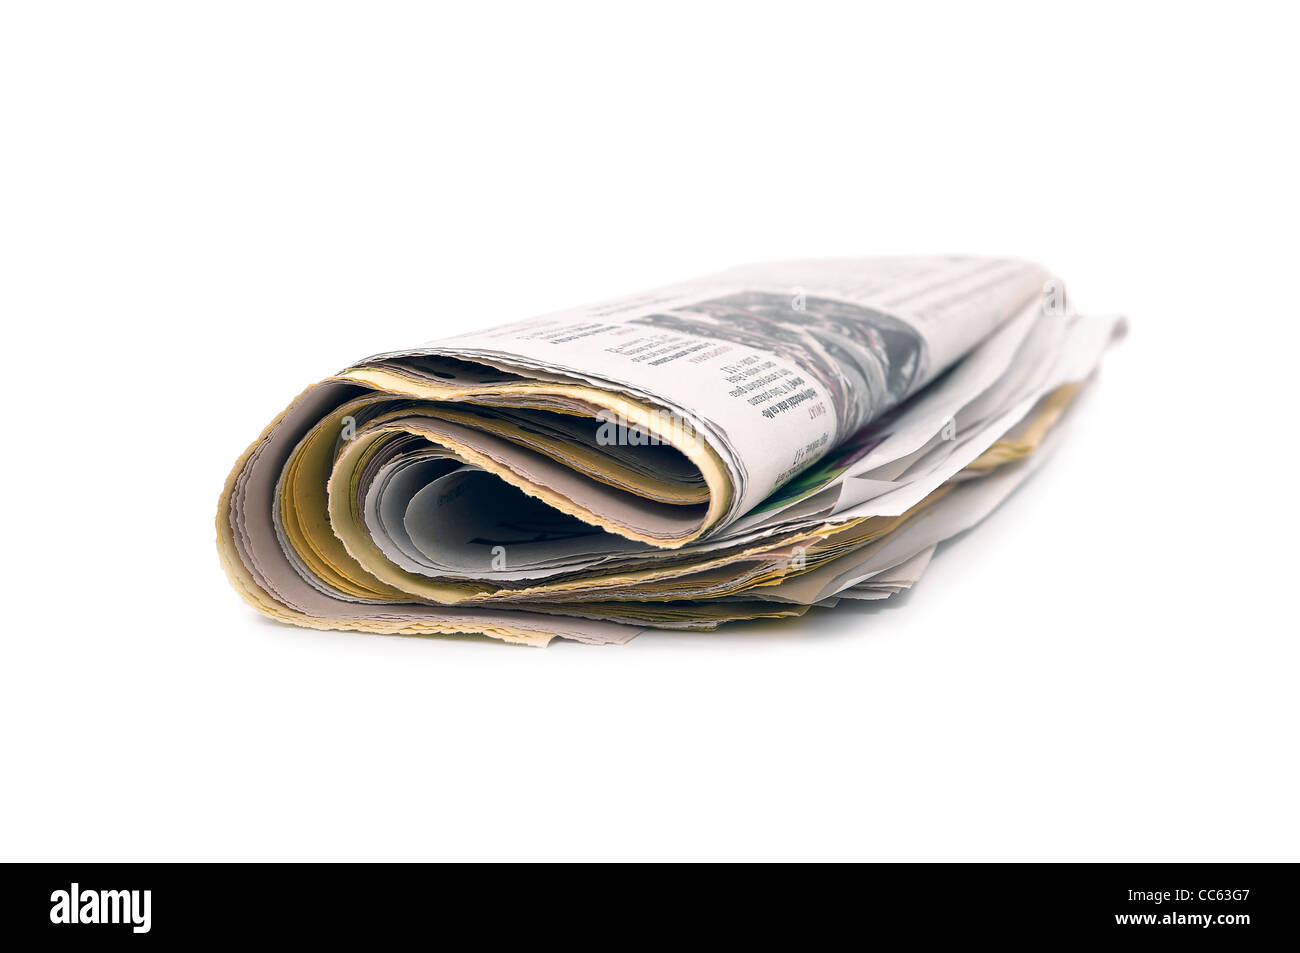 newspaper on a white background - Stock Image